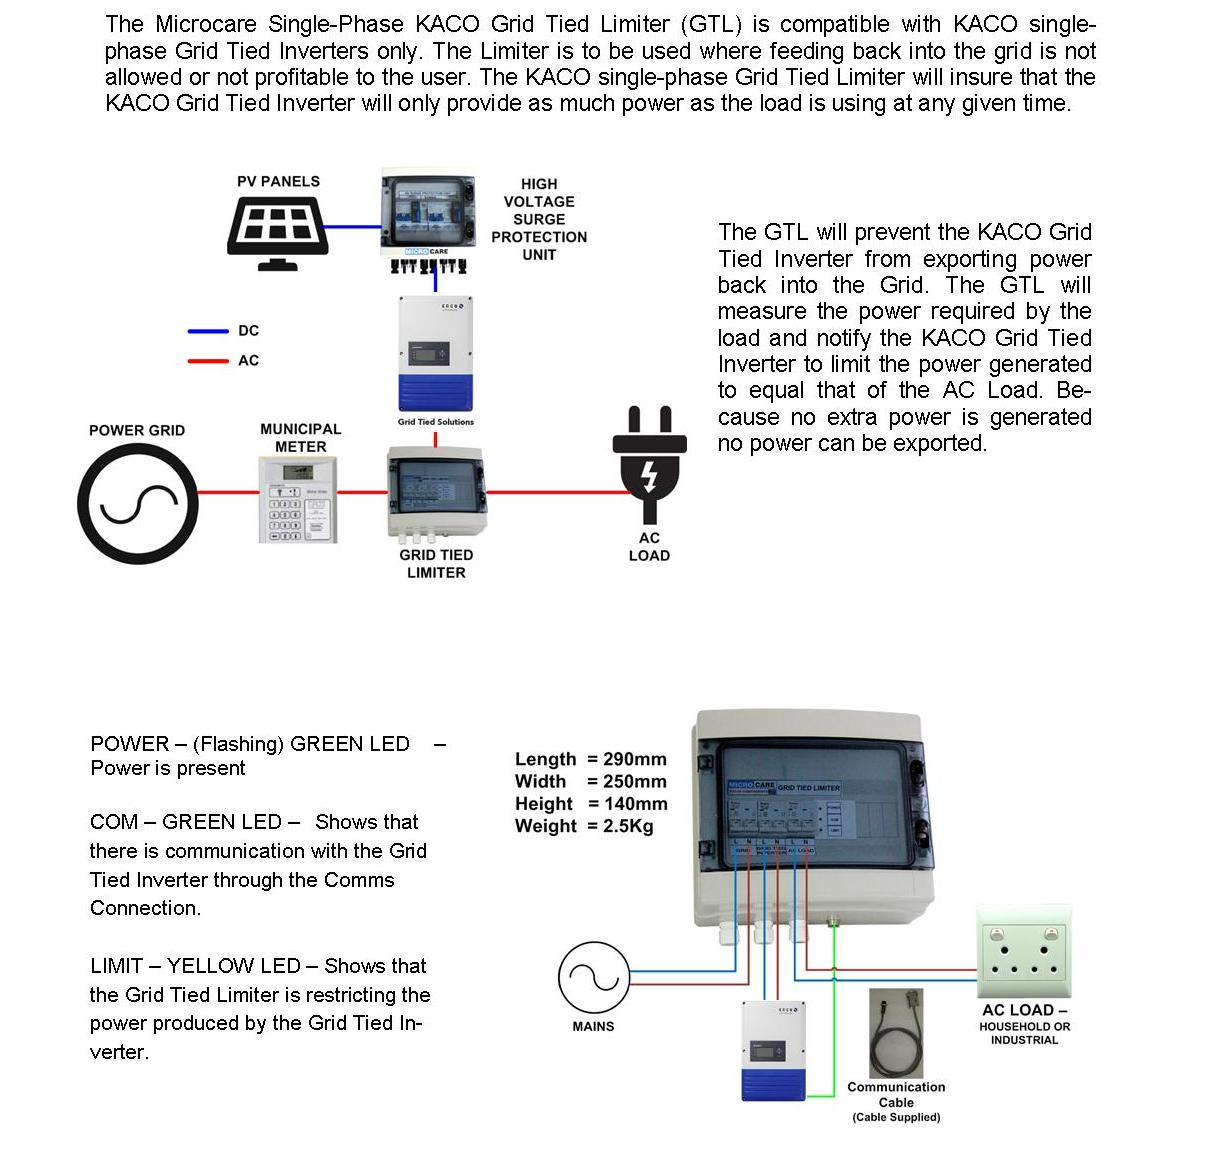 kaco inverter wiring diagram kaco image wiring diagram kaco single phase grid tied limiter microcare solar components on kaco inverter wiring diagram